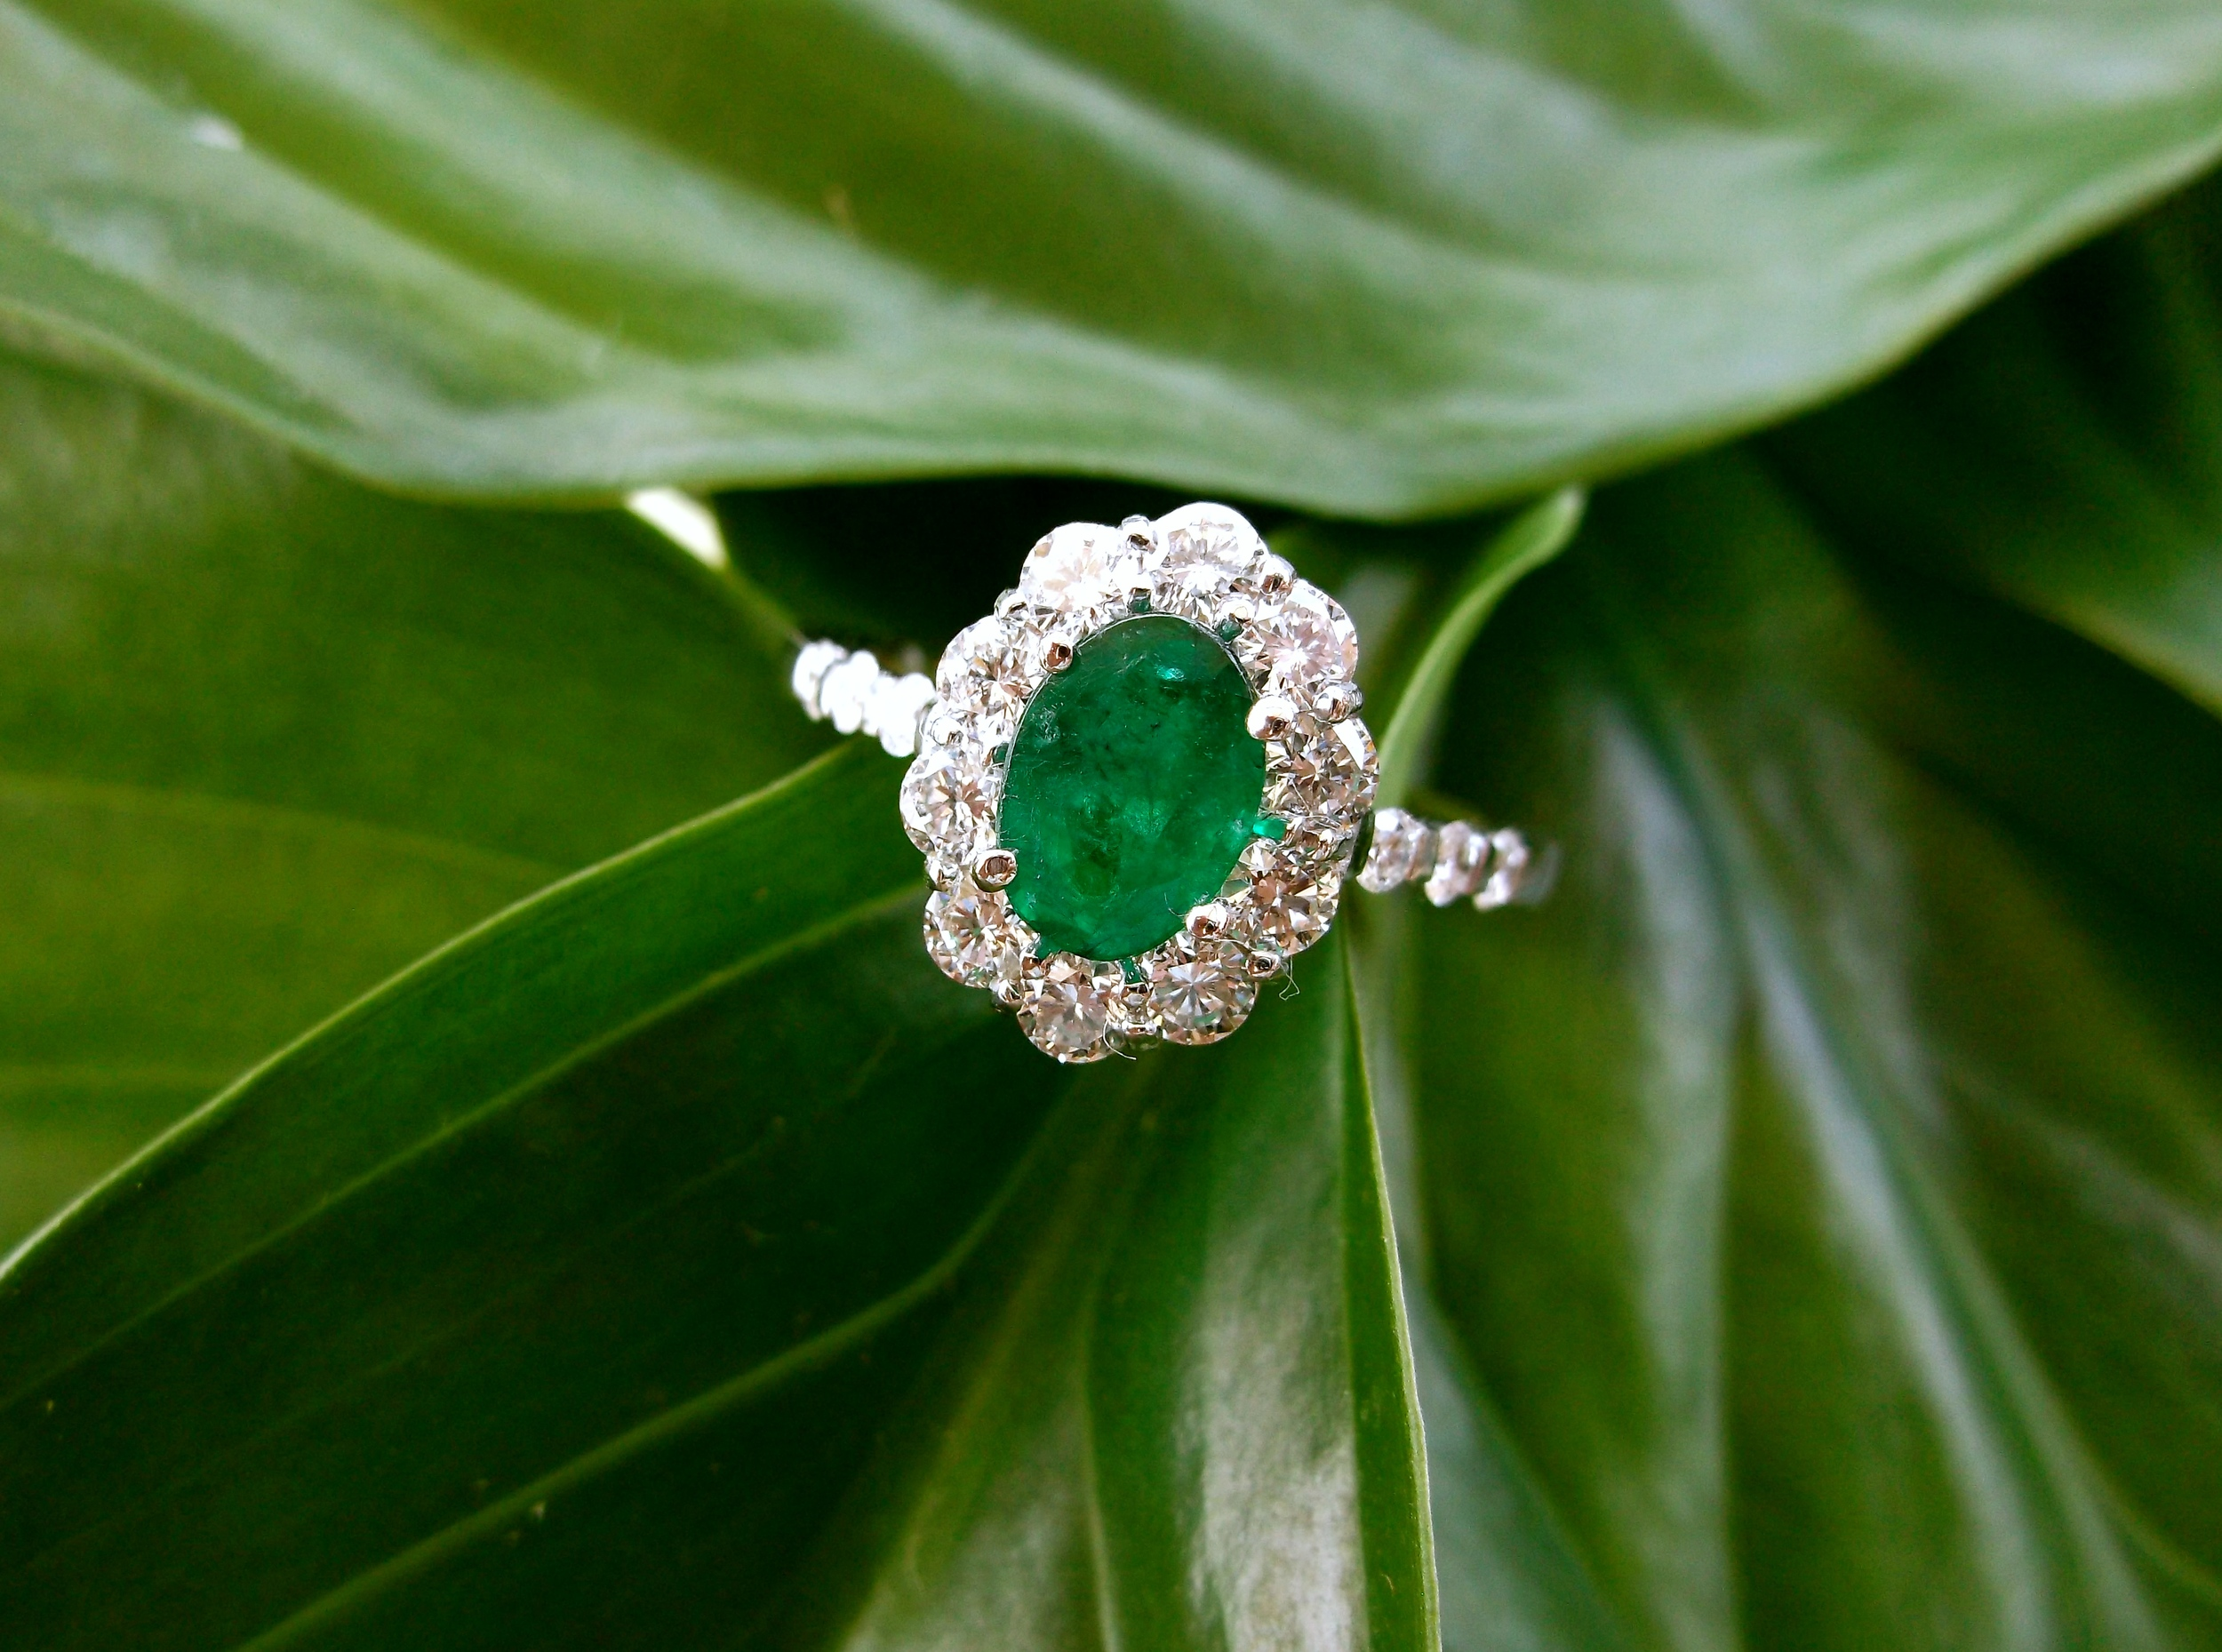 SOLD - Gorgeous emerald and diamond ring set in white gold with a 0.65 carat emerald in the center surrounded by 0.71 carats total weight in diamonds.